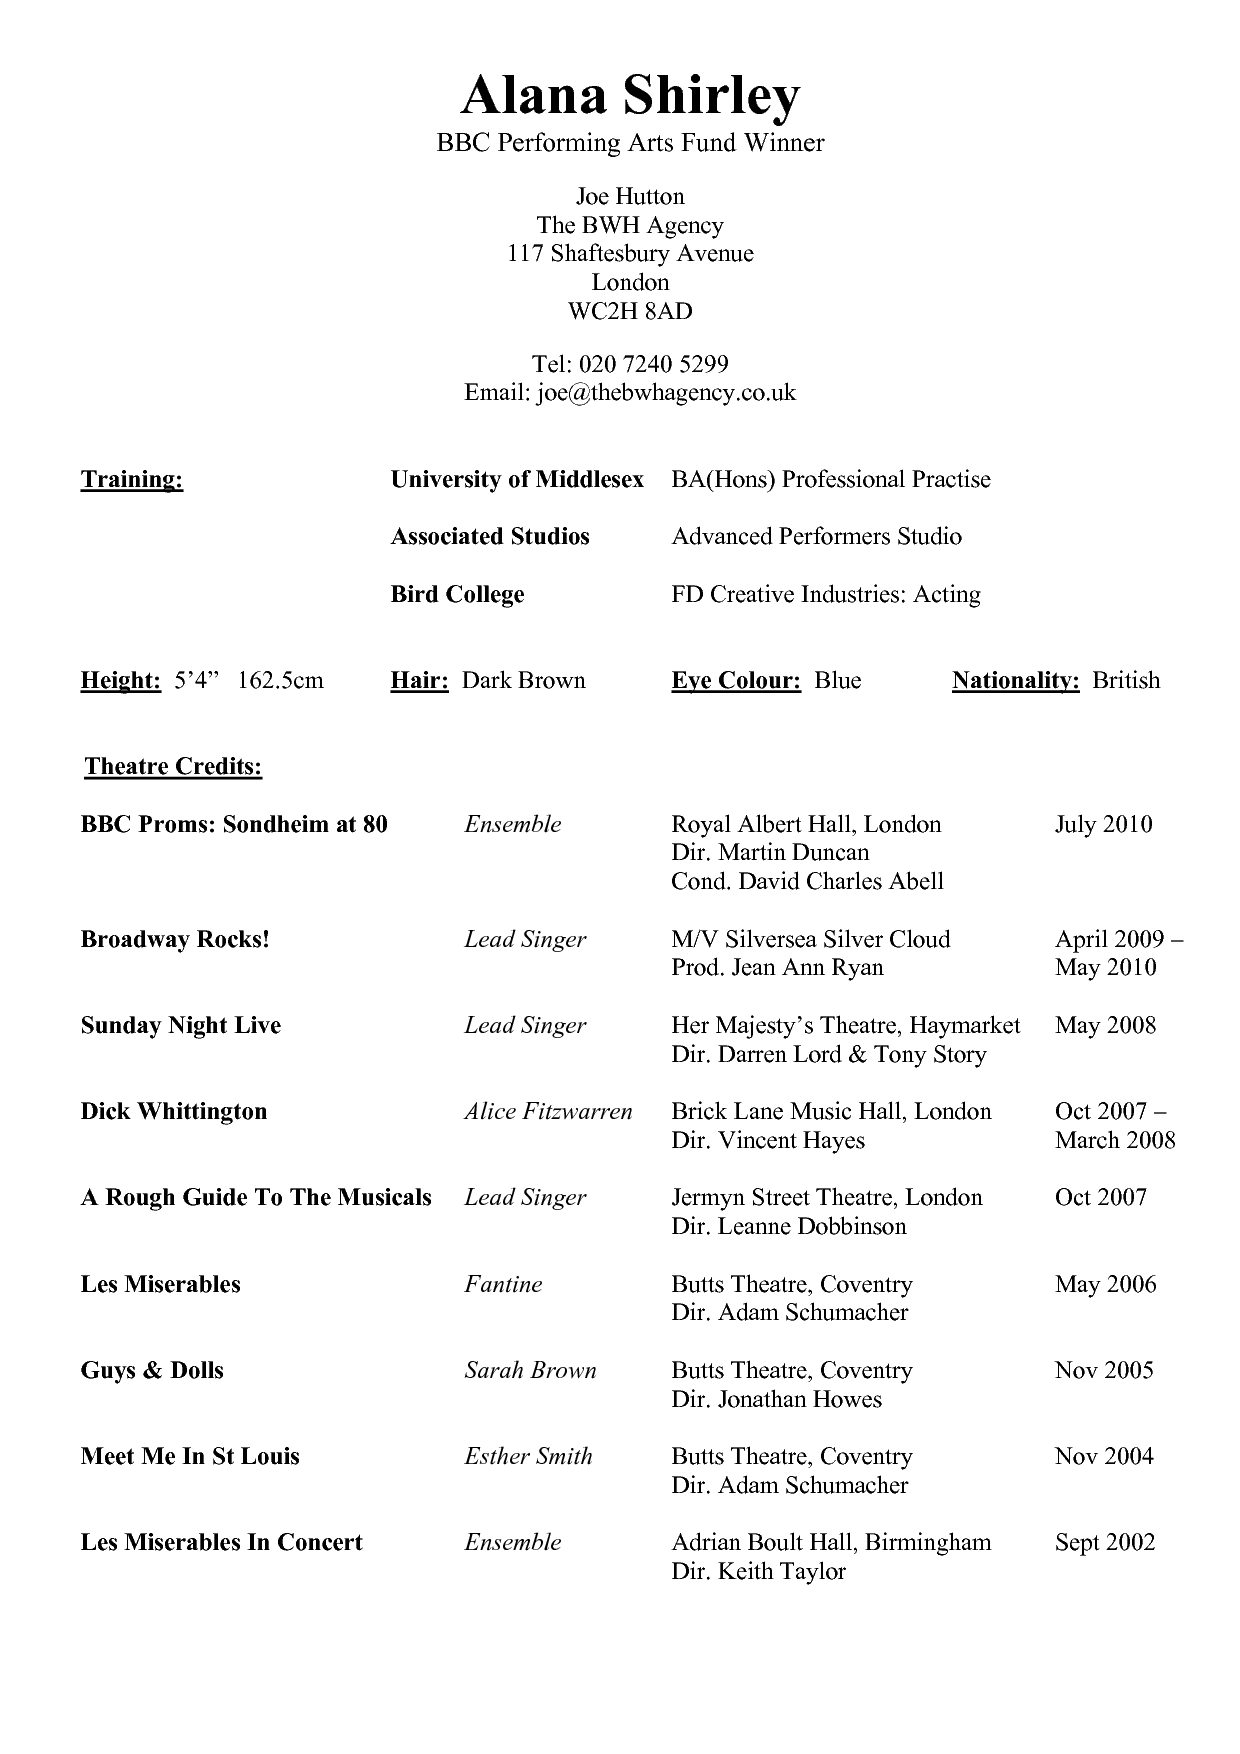 Resume Template Example For Performing Arts With Theatre Credits  Resume Templates Examples Free